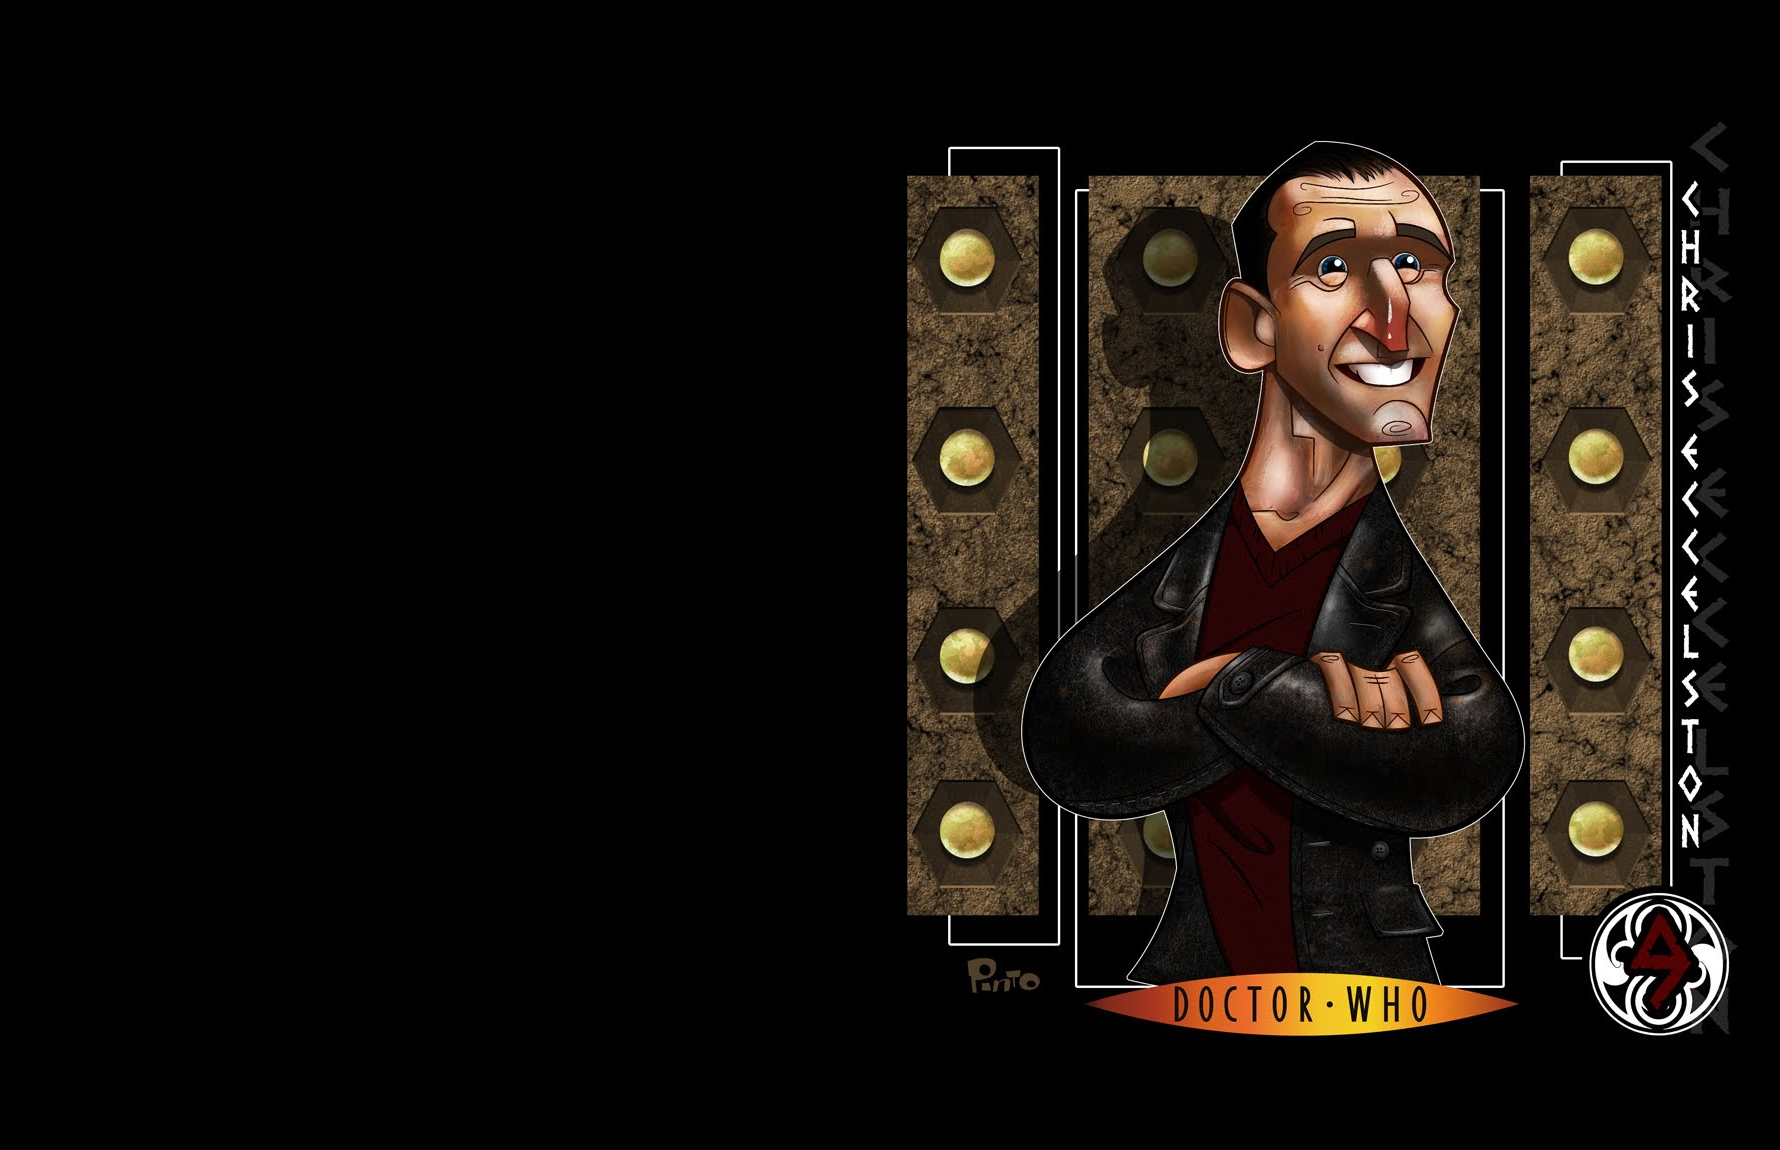 caricature doctor Who? christopher HD Wallpaper